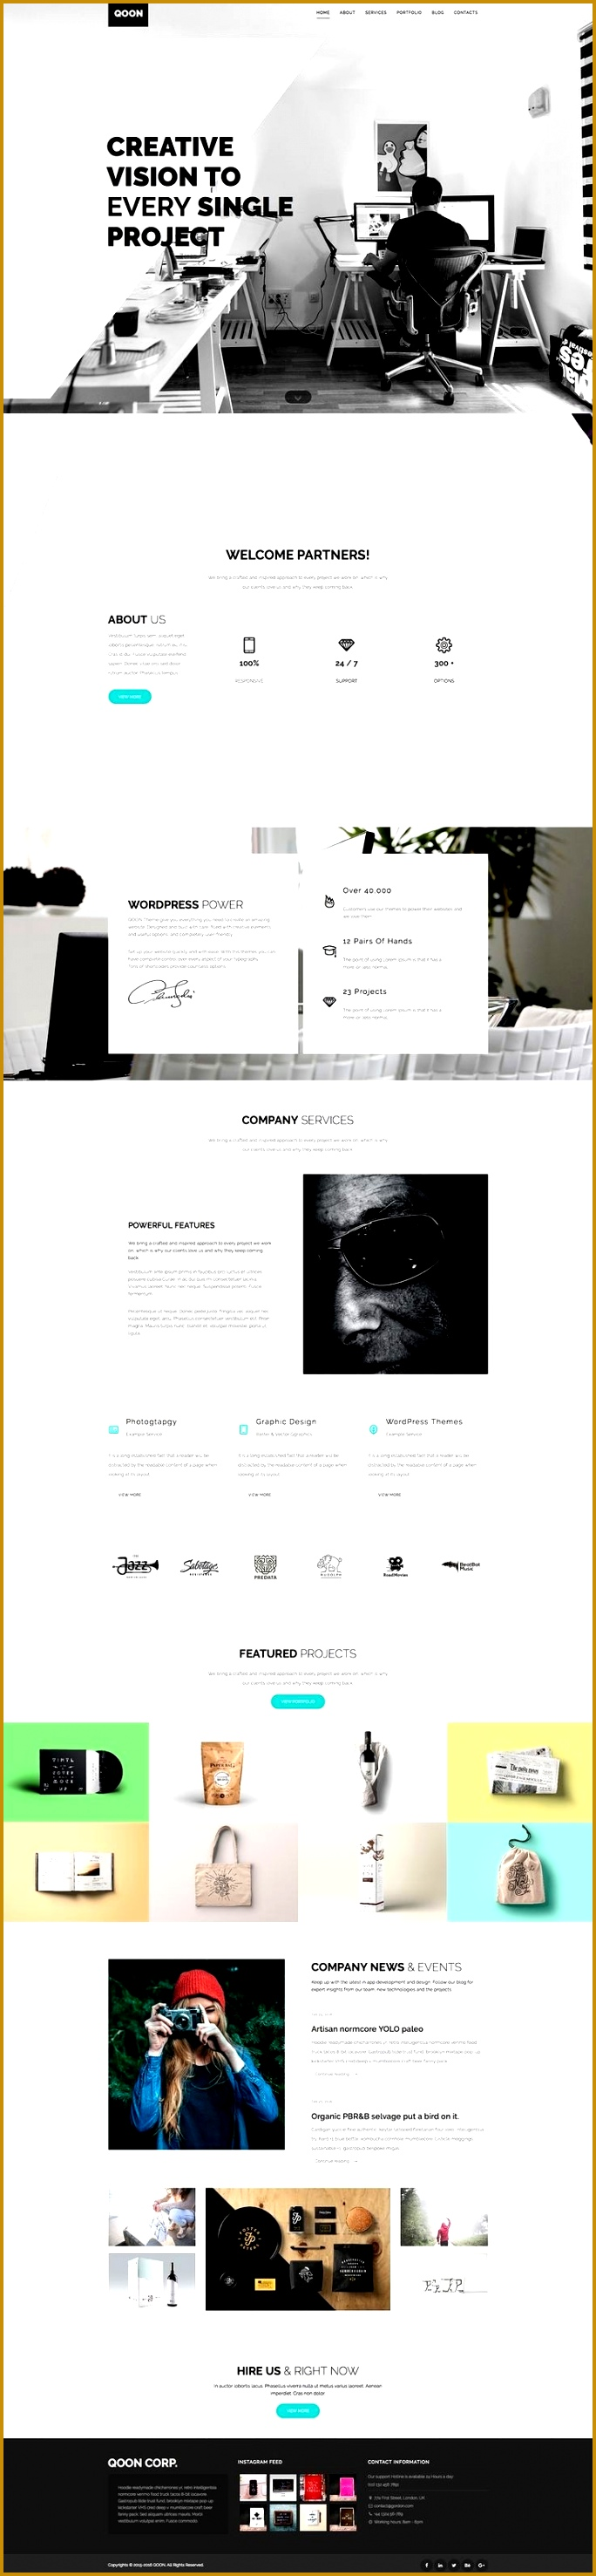 New Pr Resume Template Elegant Dictionary Template 0d Archives Free Free Resume Downloads Elegant Awesome Awesome Good Resumes Examples Awesome 6842954